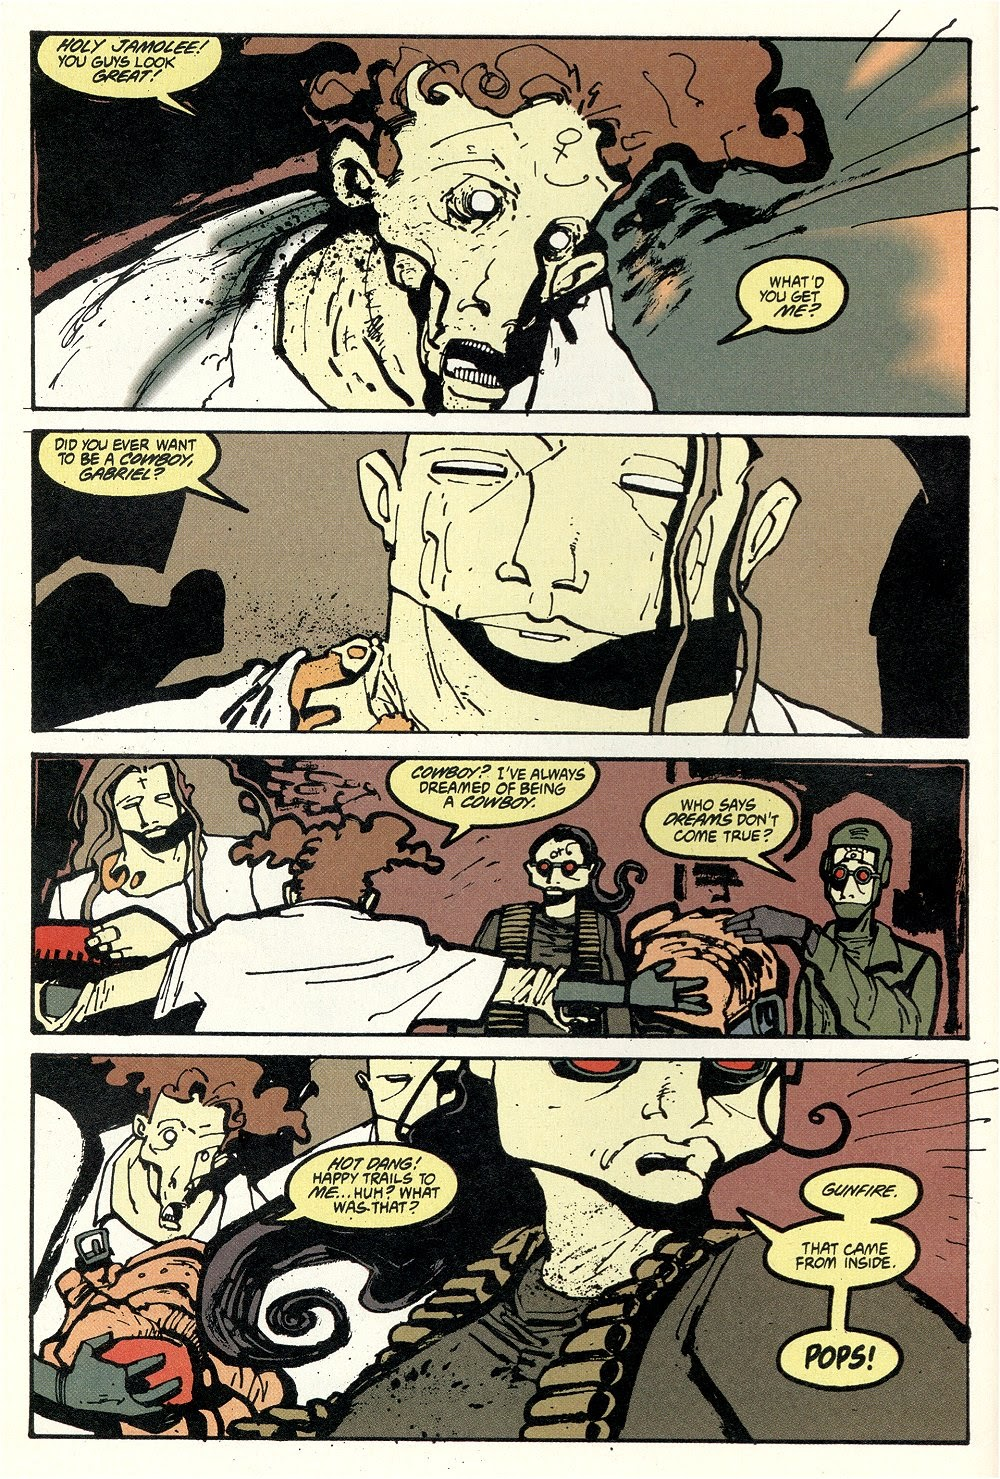 Read online Ted McKeever's Metropol comic -  Issue #11 - 14